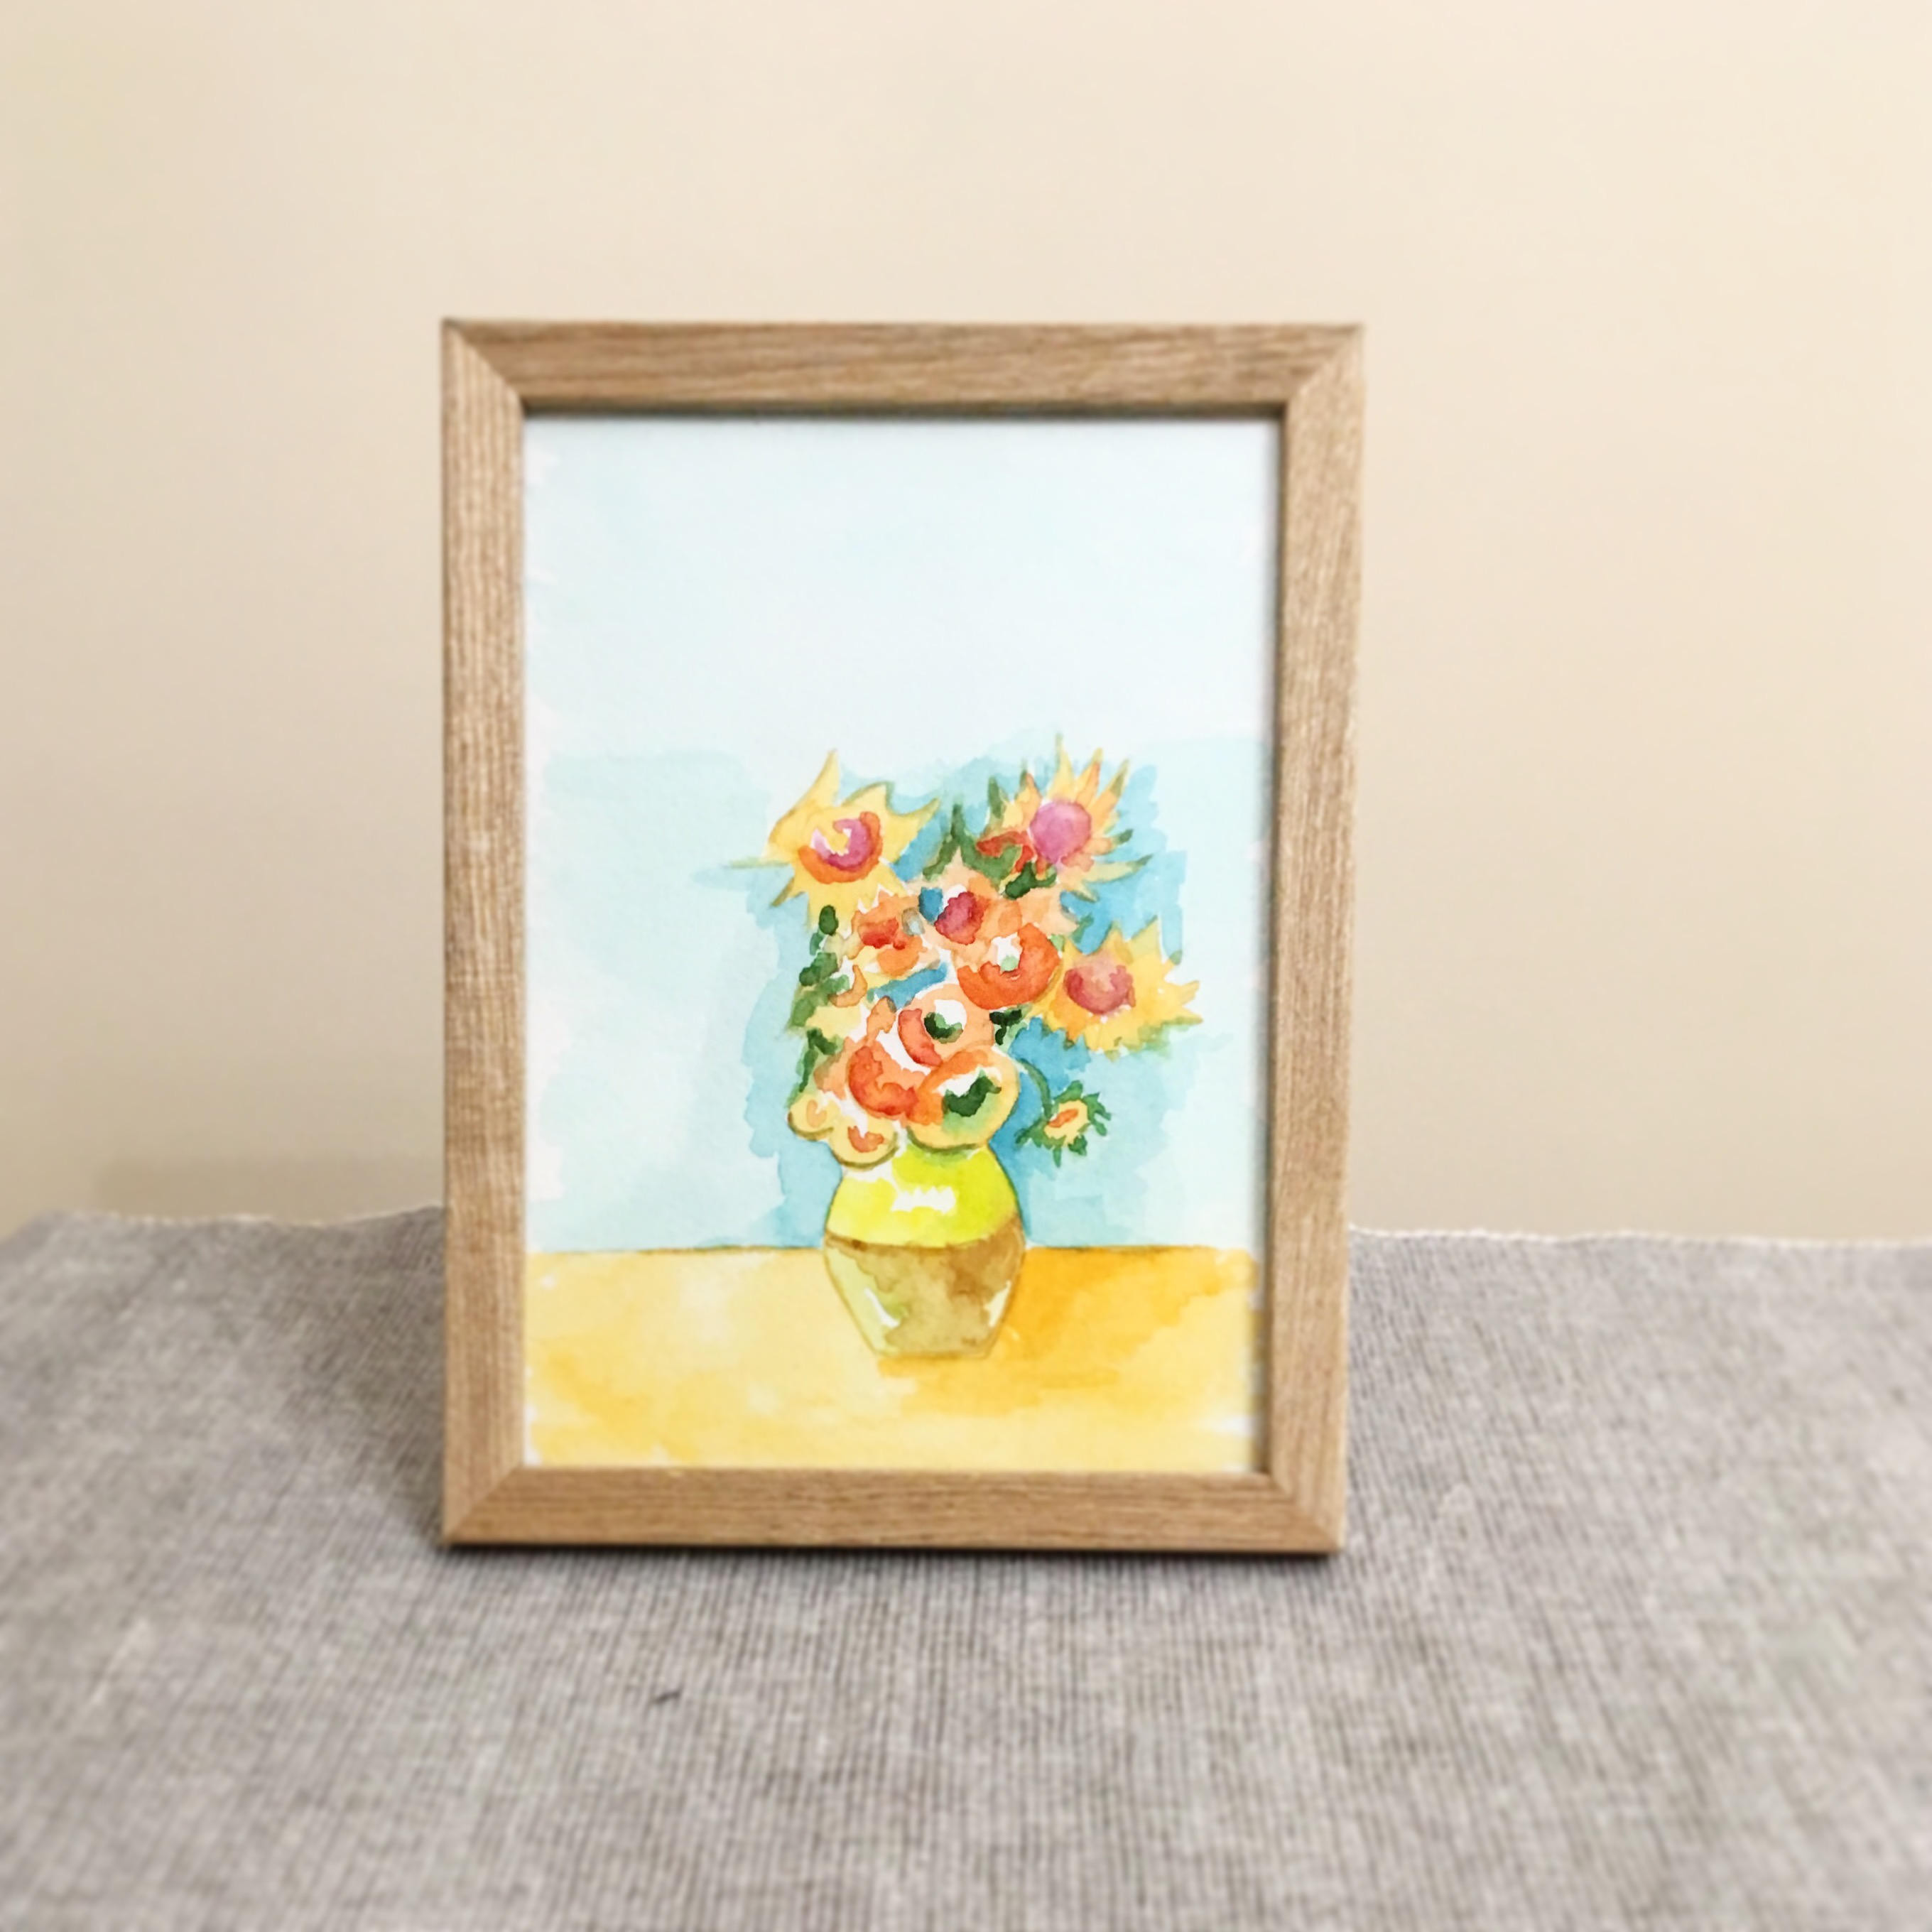 "sunflowers in a vase van gogh of original sunflowers watercolor flower nature a5 watercolour etsy intended for dŸ""Žzoom"